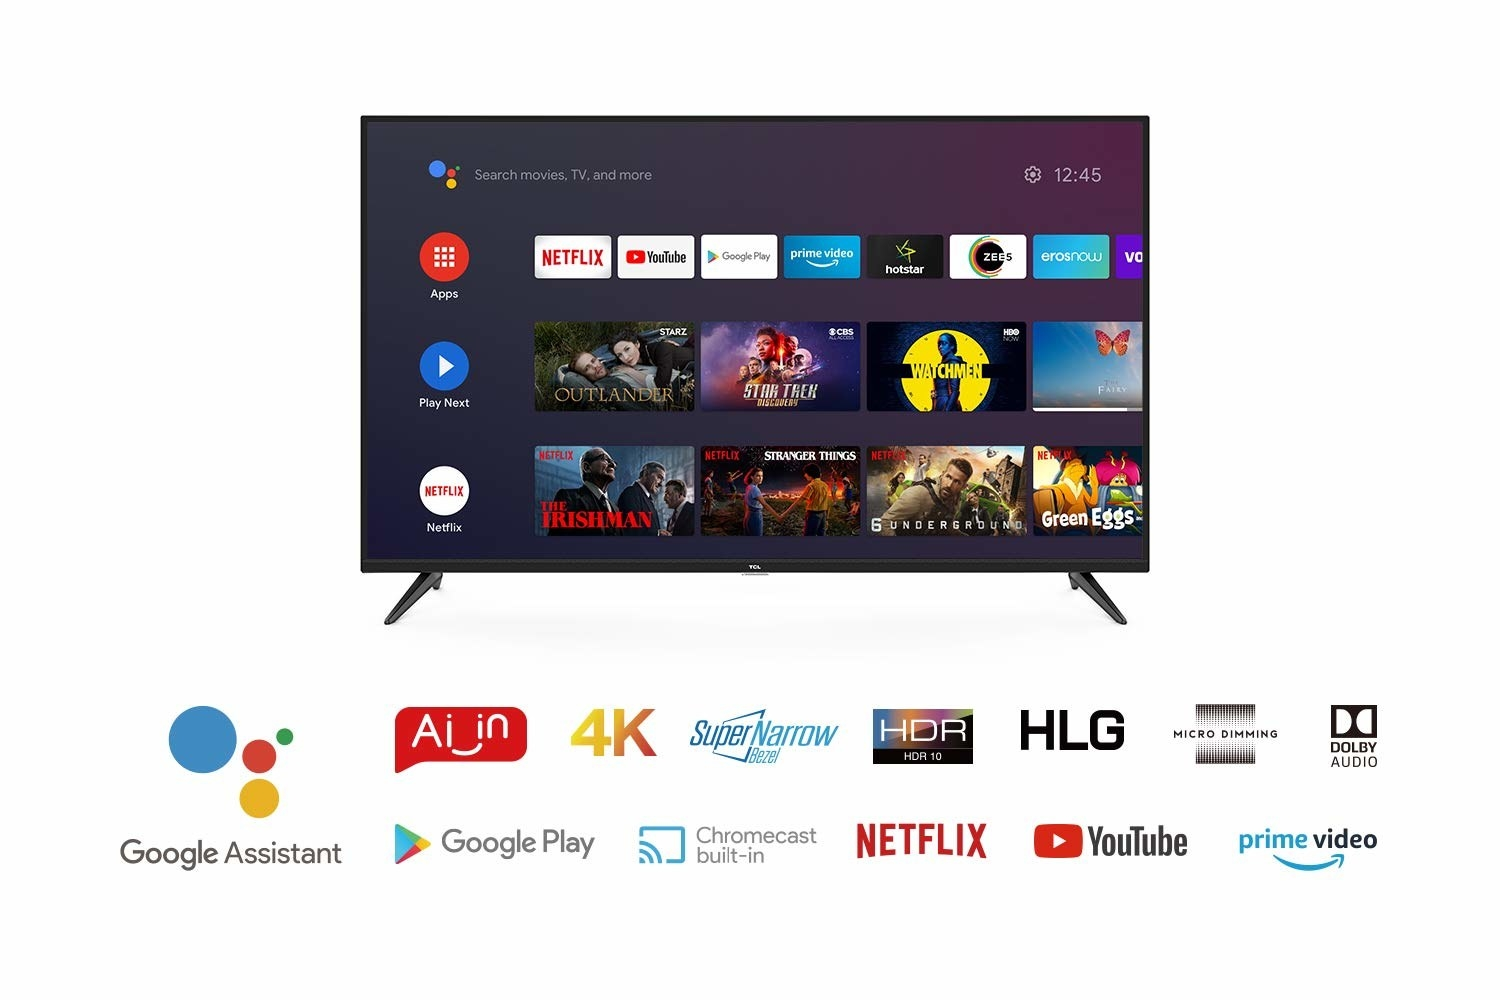 A TCL AI 4K UHD Android Smart QLED TV in black.